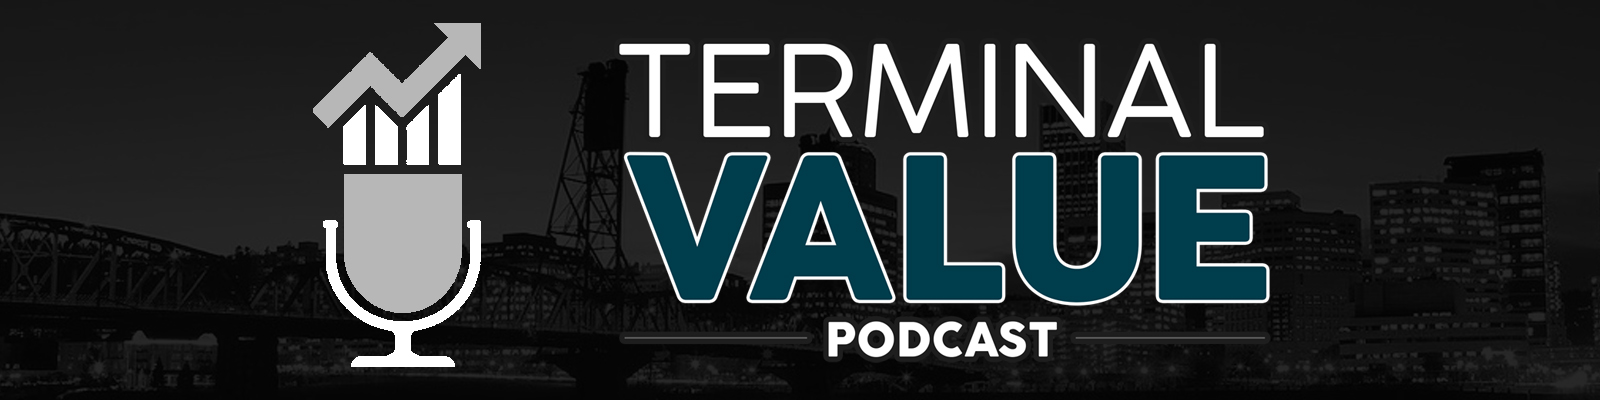 The Terminal Value Podcast